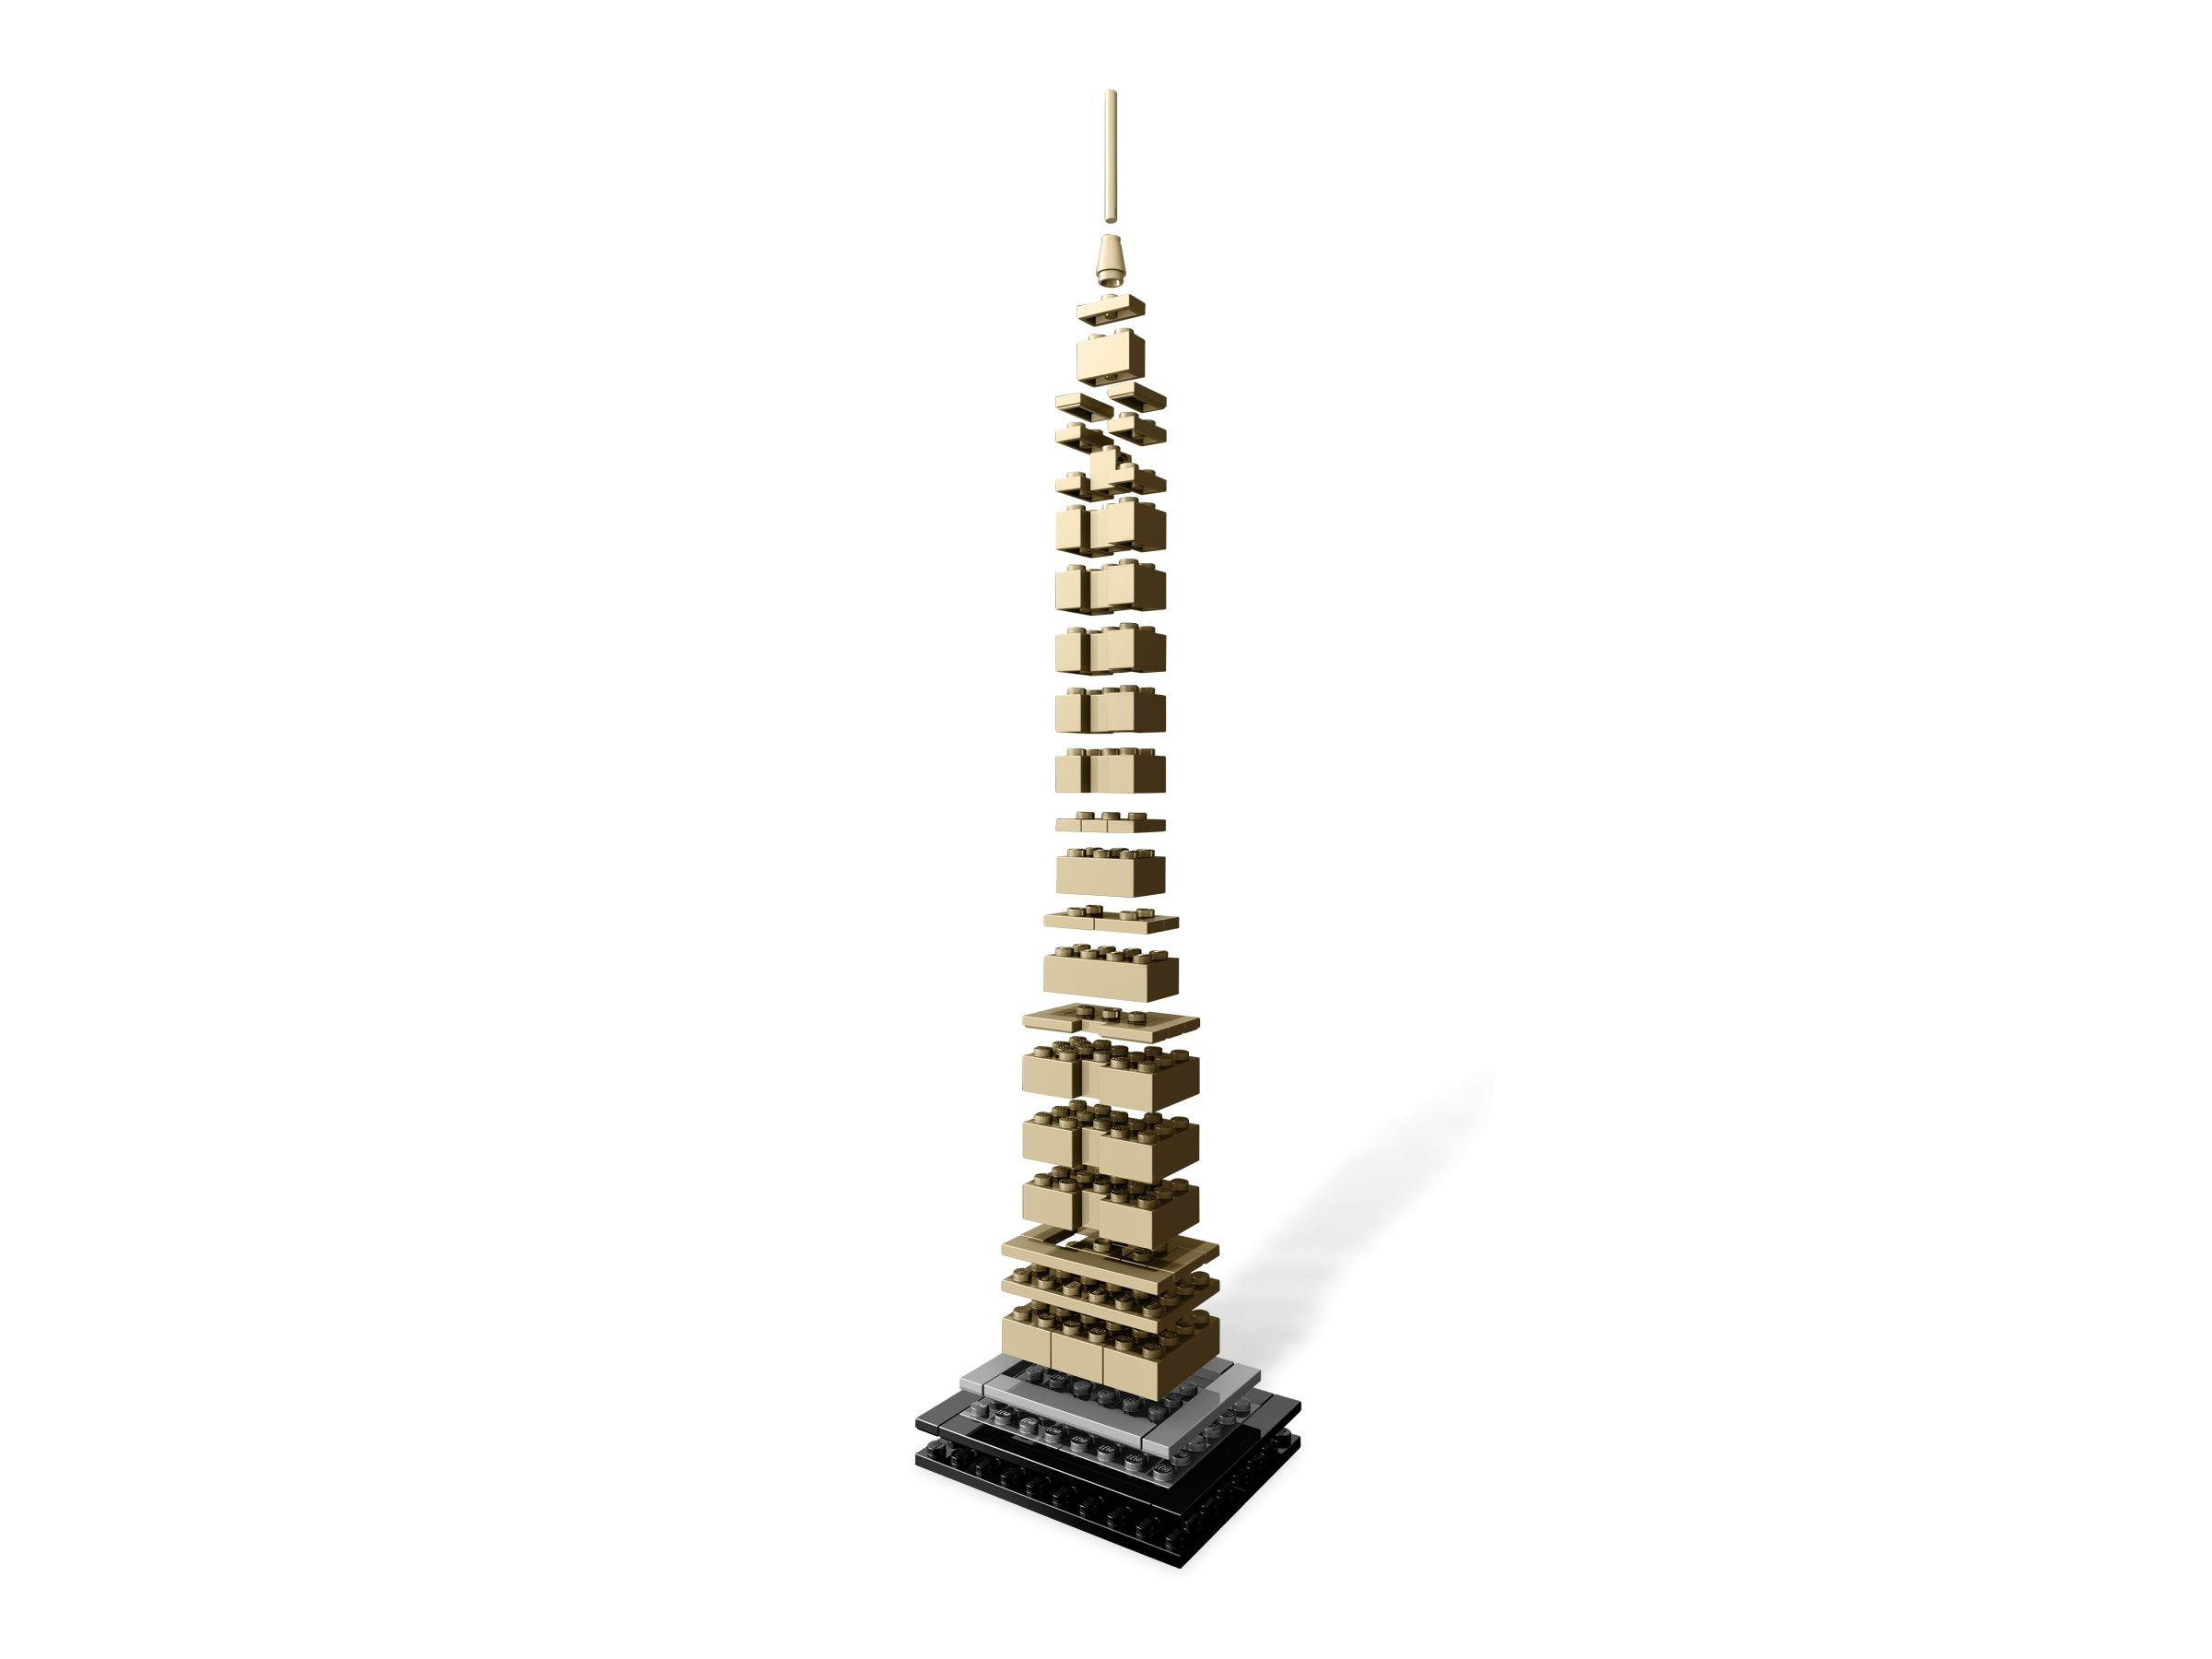 LEGO Architecture 21002 Empire State Building LEGO_21002_alt2.jpg